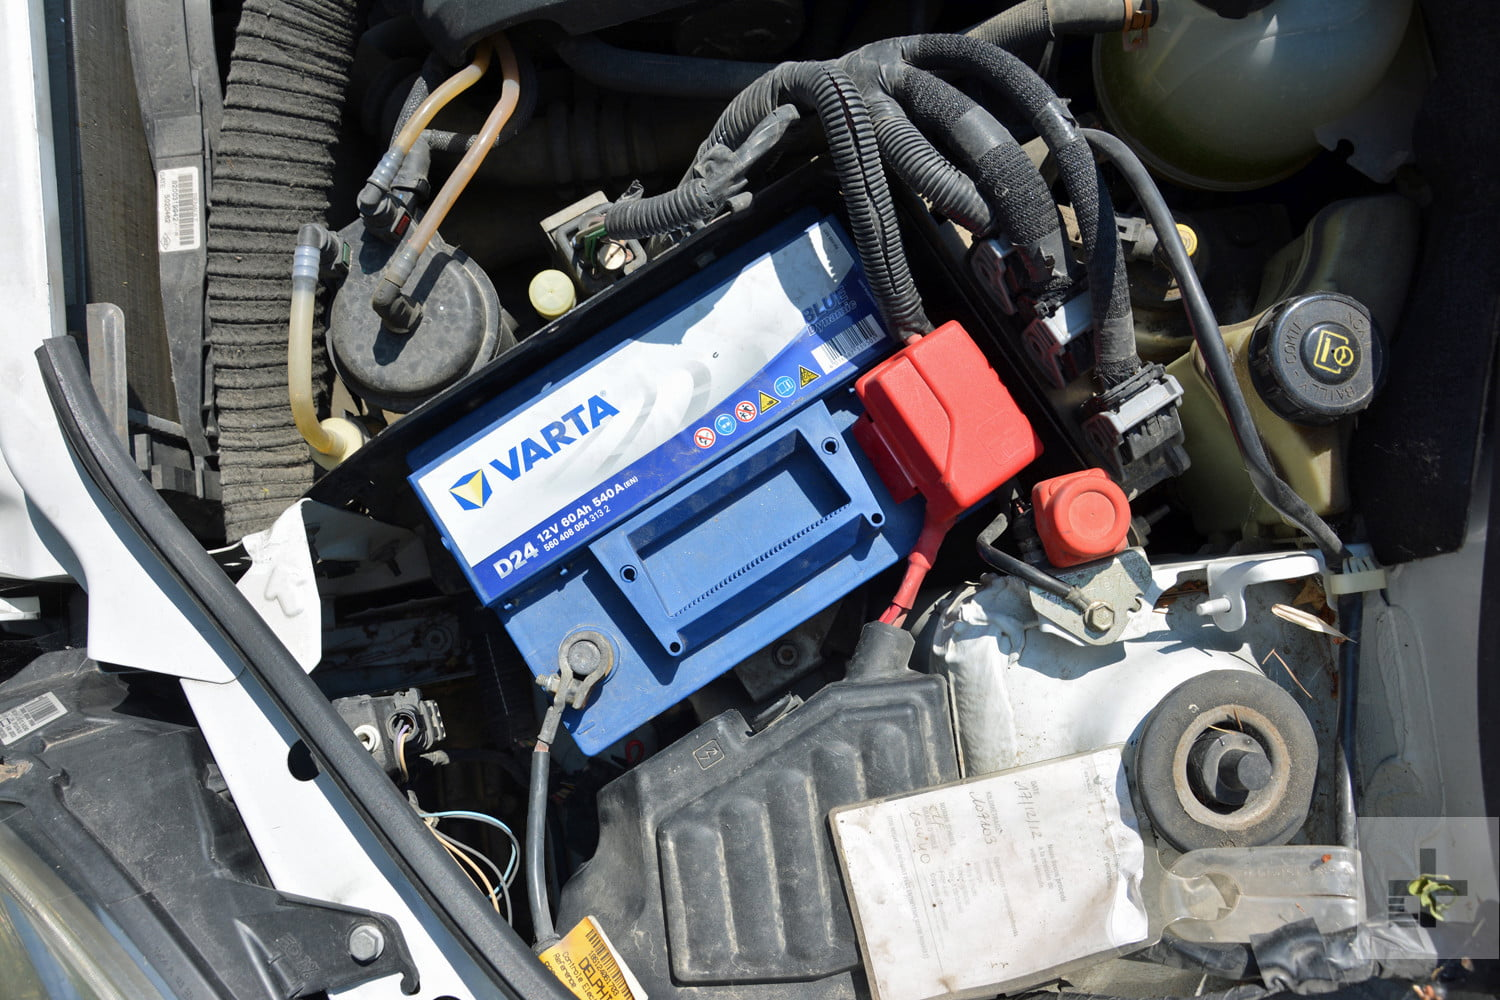 Battery Digital Instructions And Photos On How To Change A Car Battery Digital